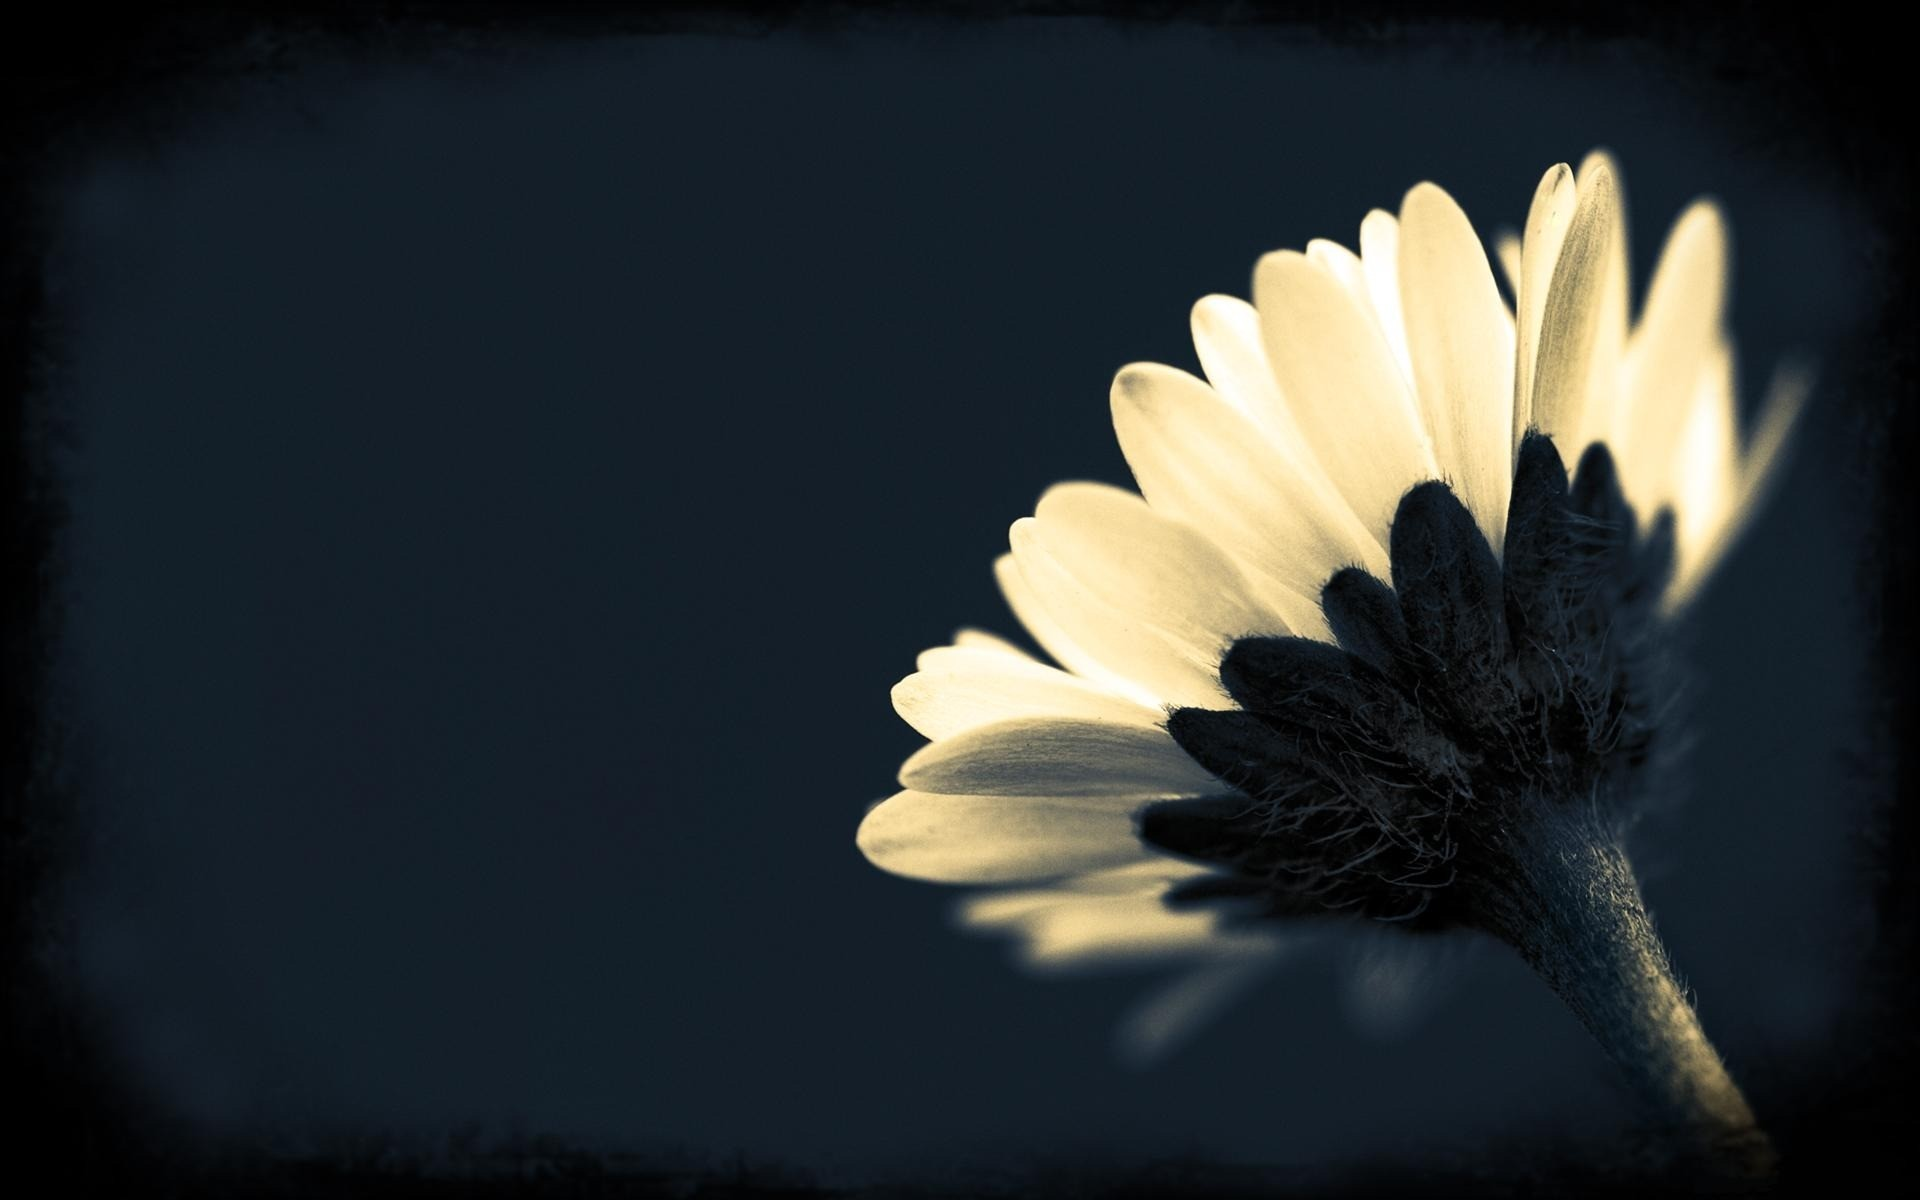 Floral Wallpaper With Black Background 39 Free Hd Wallpaper. Floral  Wallpaper With Black Background 39 Free Hd Wallpaper